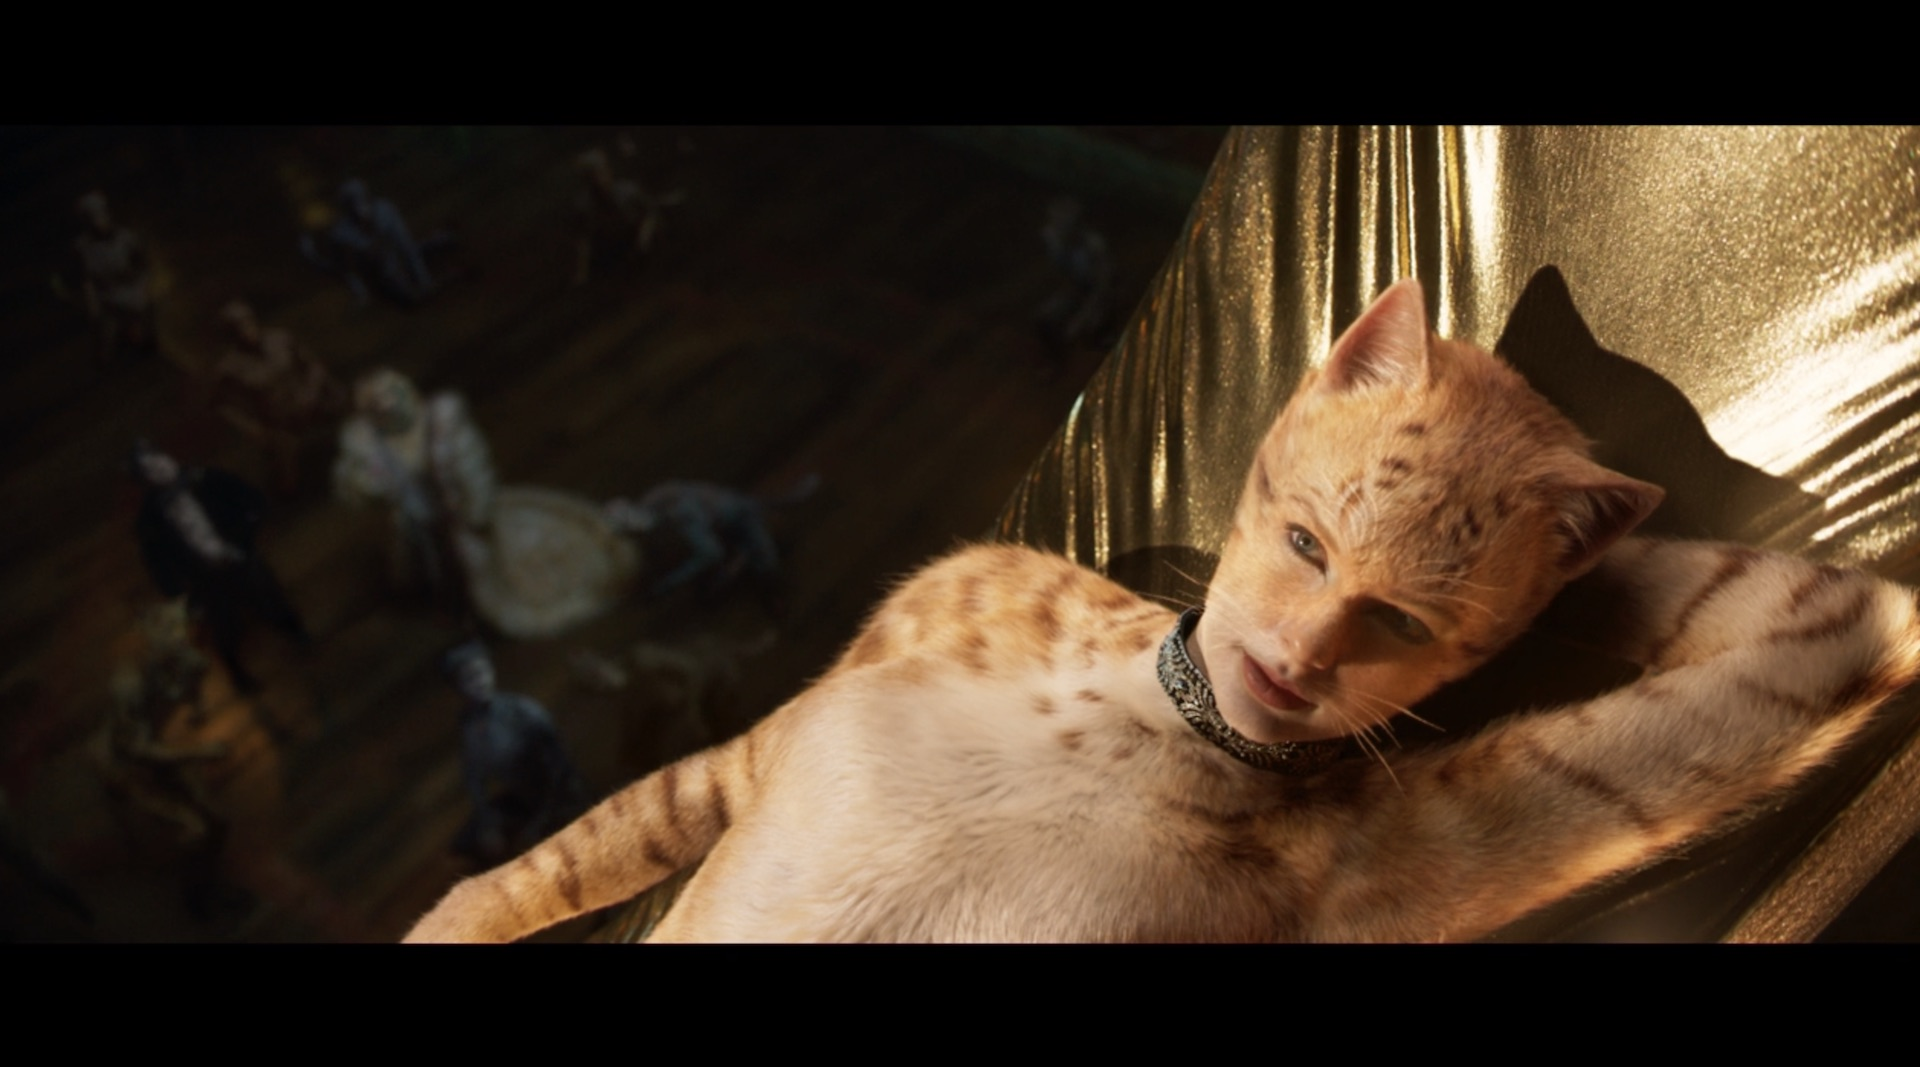 The 'Cats' trailer dropped. We have 34 questions.